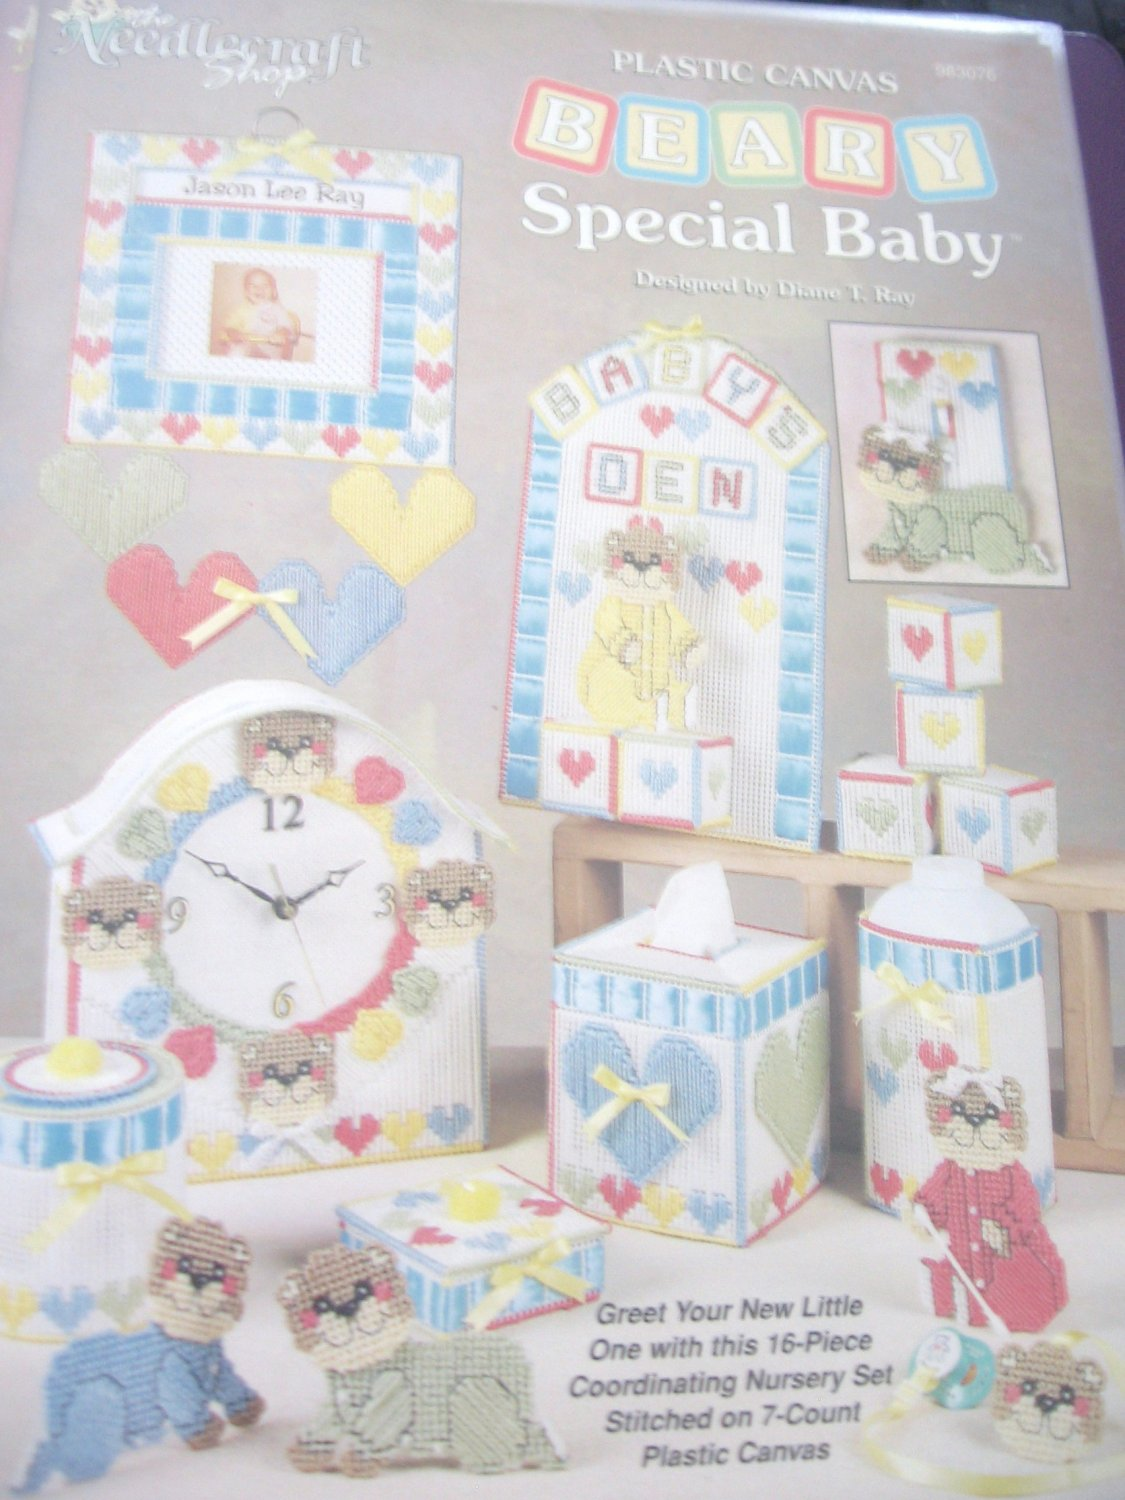 Plastic Canvas Beary Special Baby - Picture Frame Clock Tissue Cover 16 Piece Nursery Set